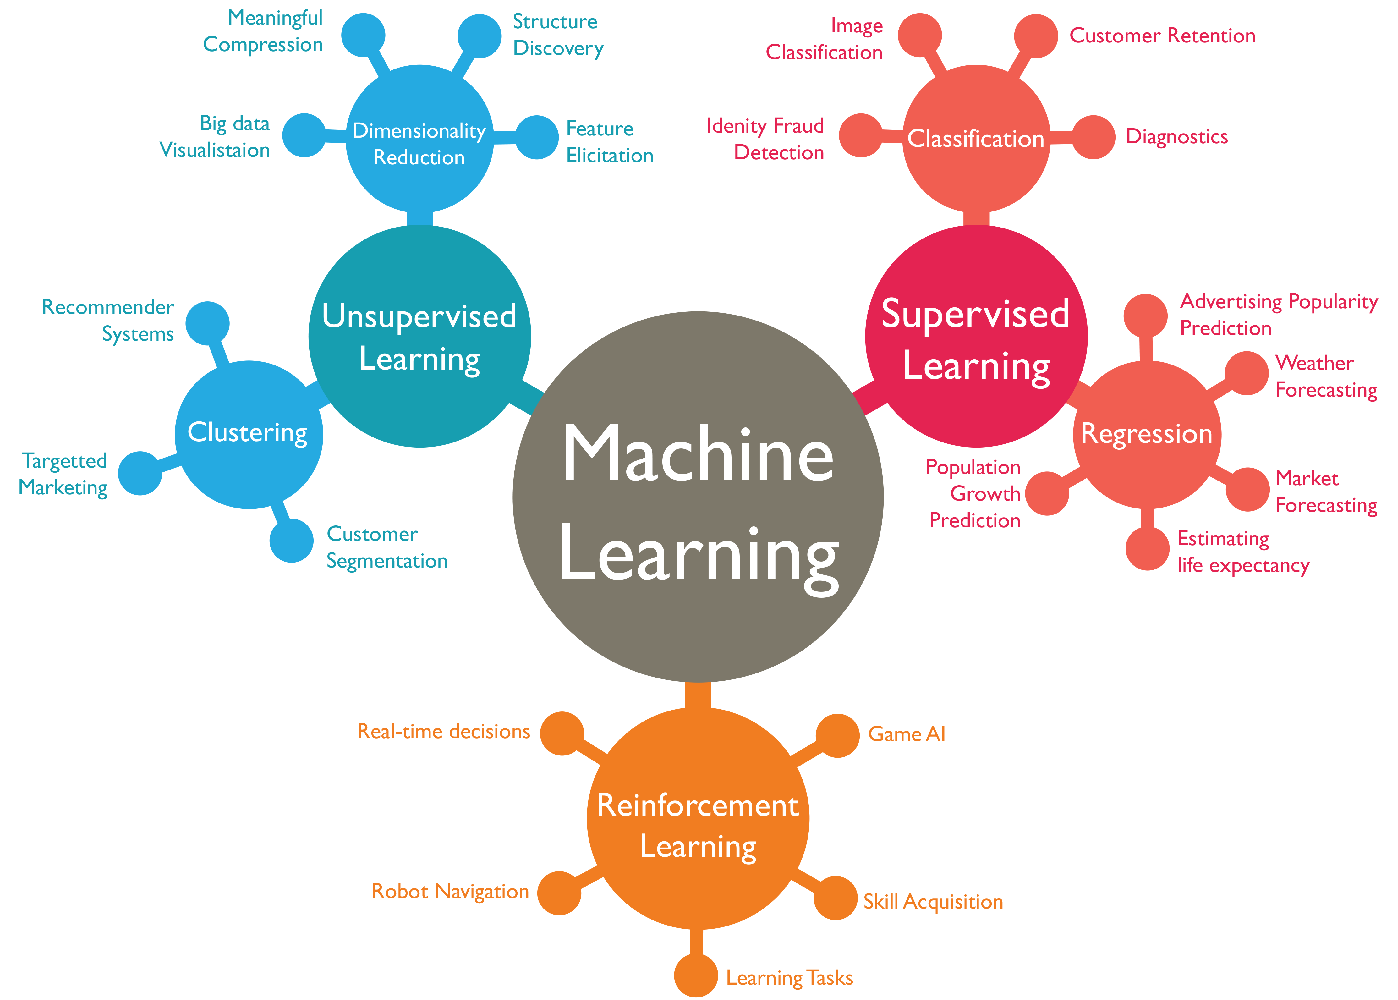 How should I plan my day to learn machine learning in 30